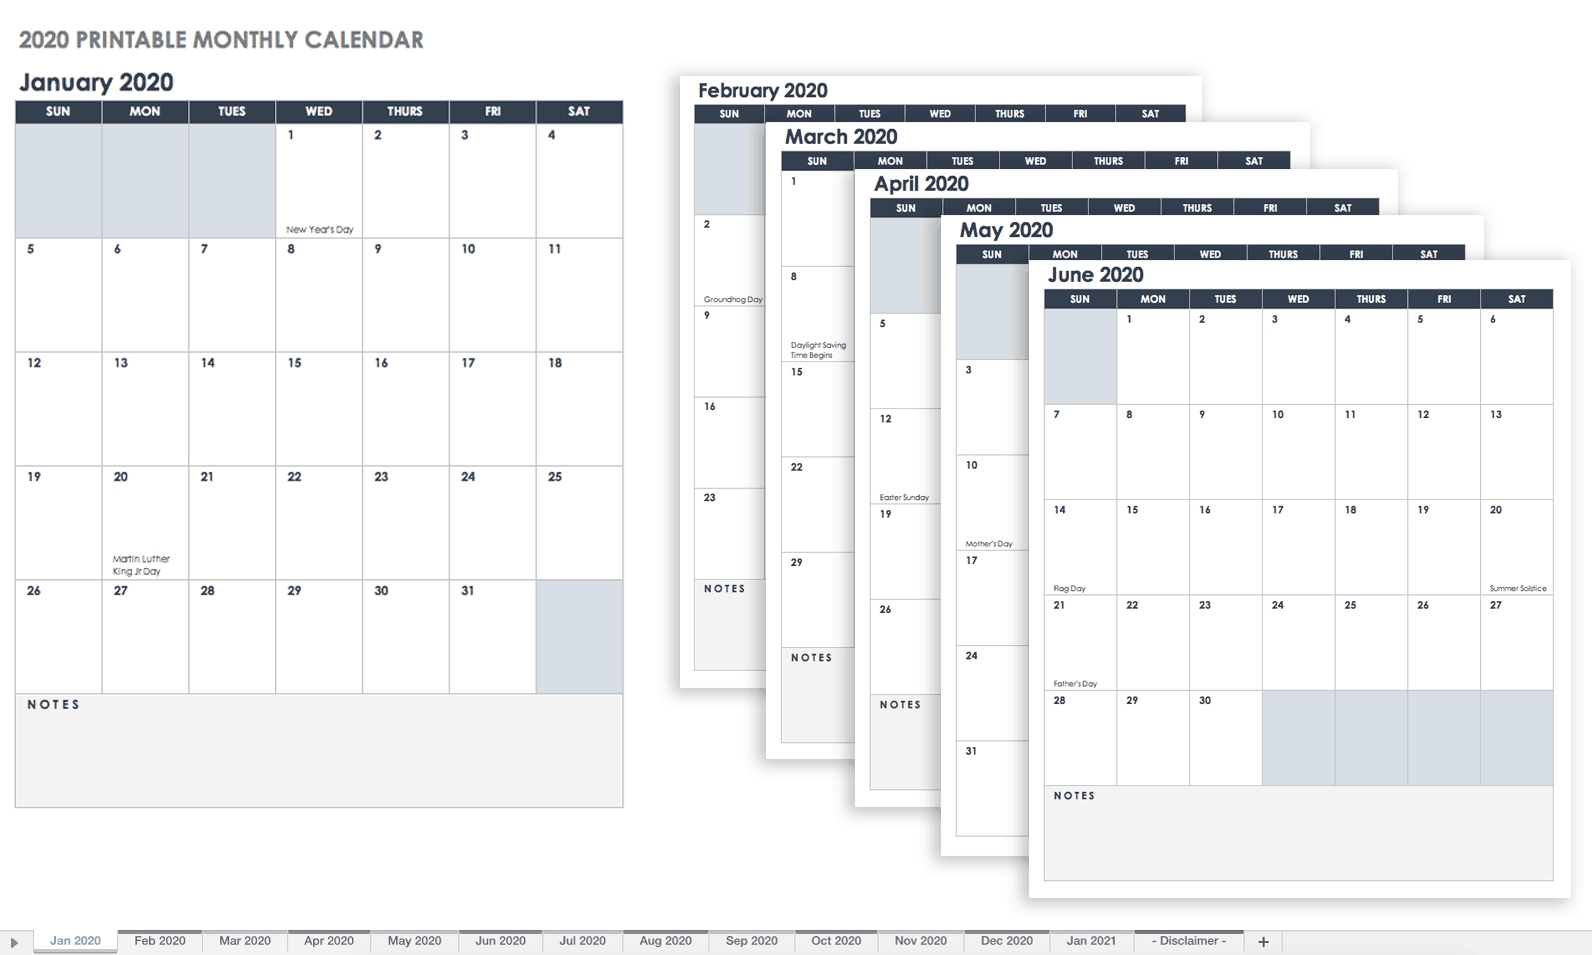 Free Blank Calendar Templates - Smartsheet-Printable Monthly Calendar Sunday To Saturday No Dates